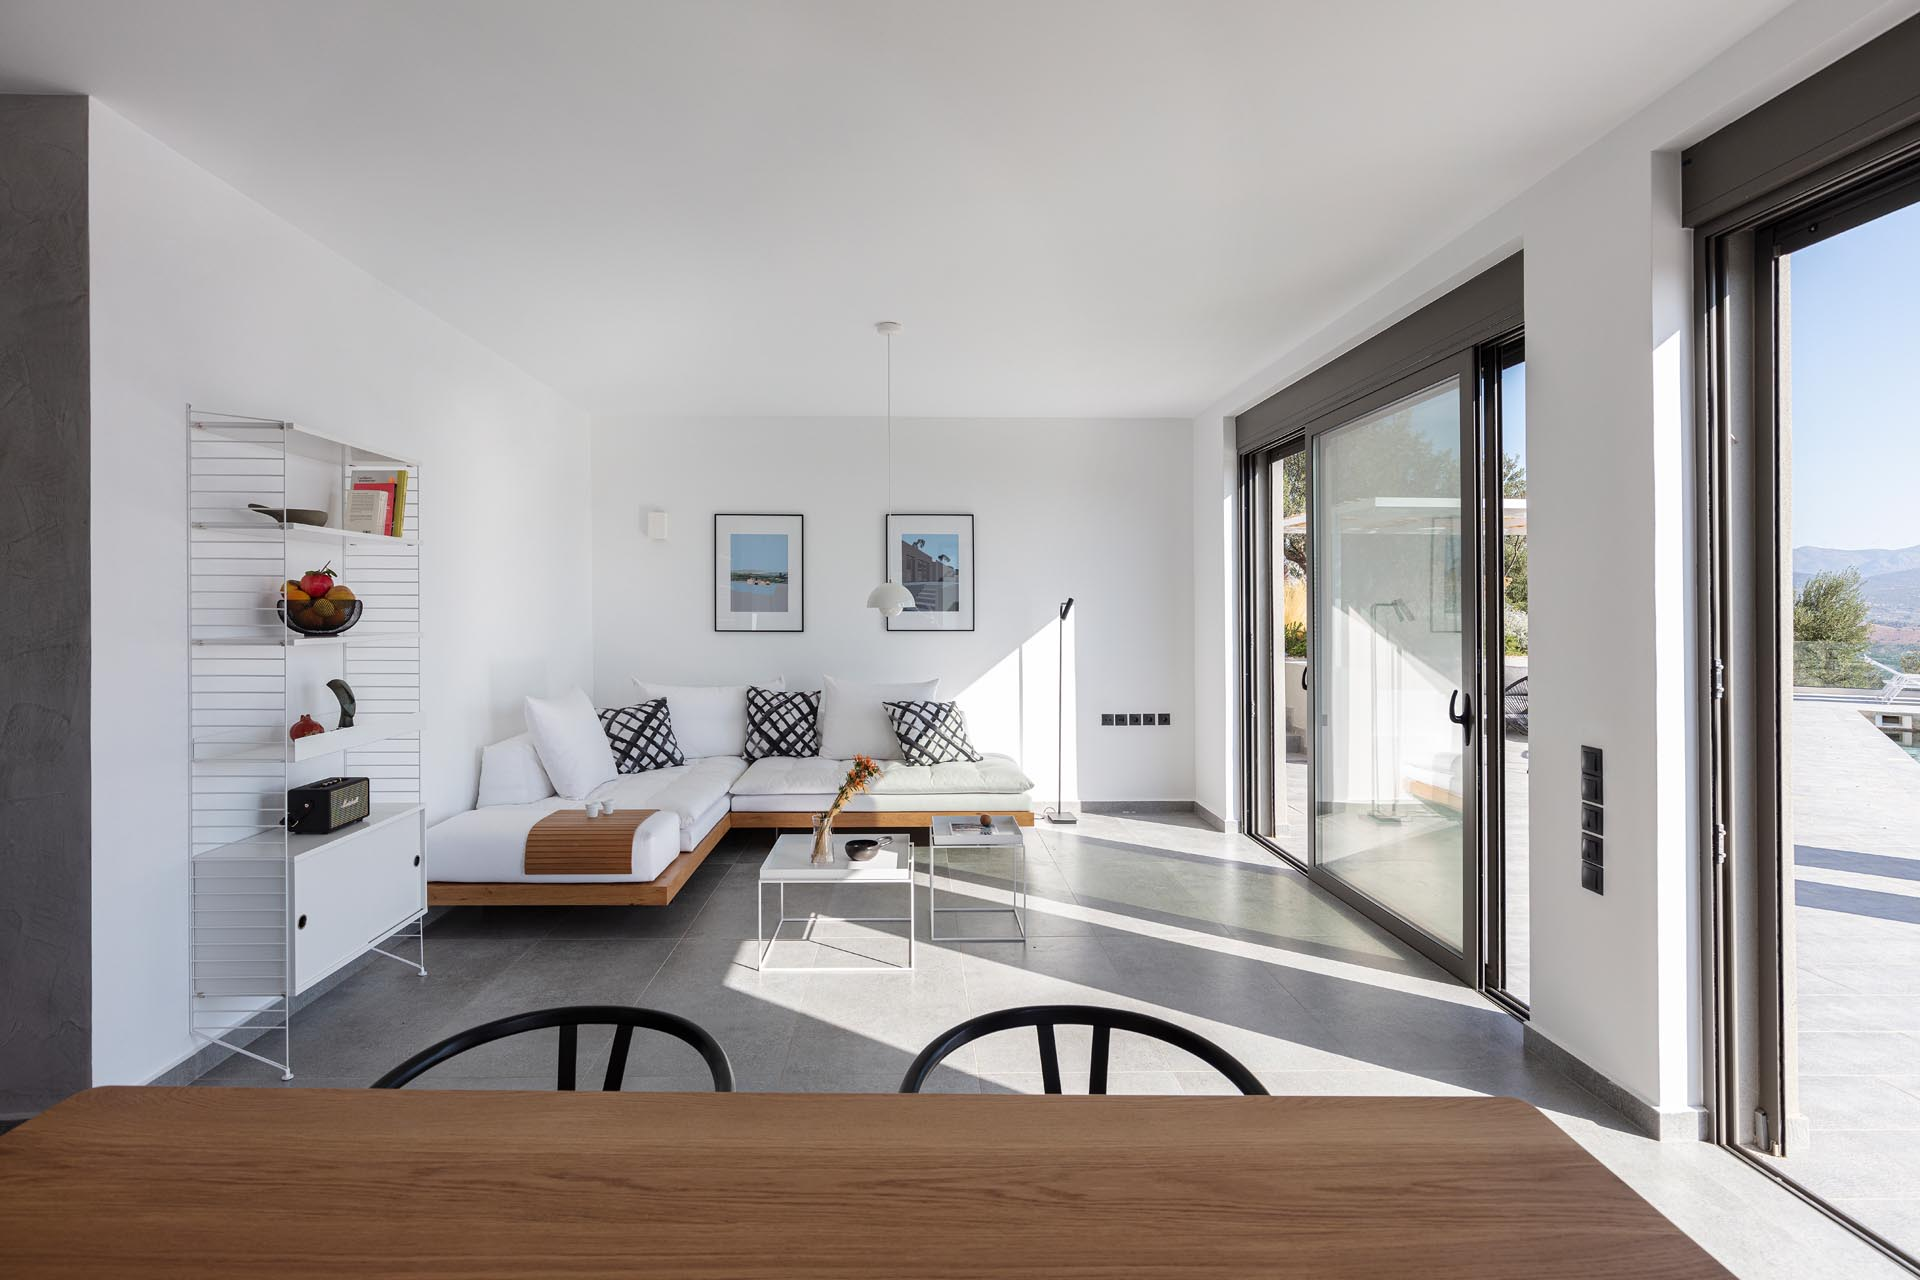 A modern white living room with concrete floors and wood accents.